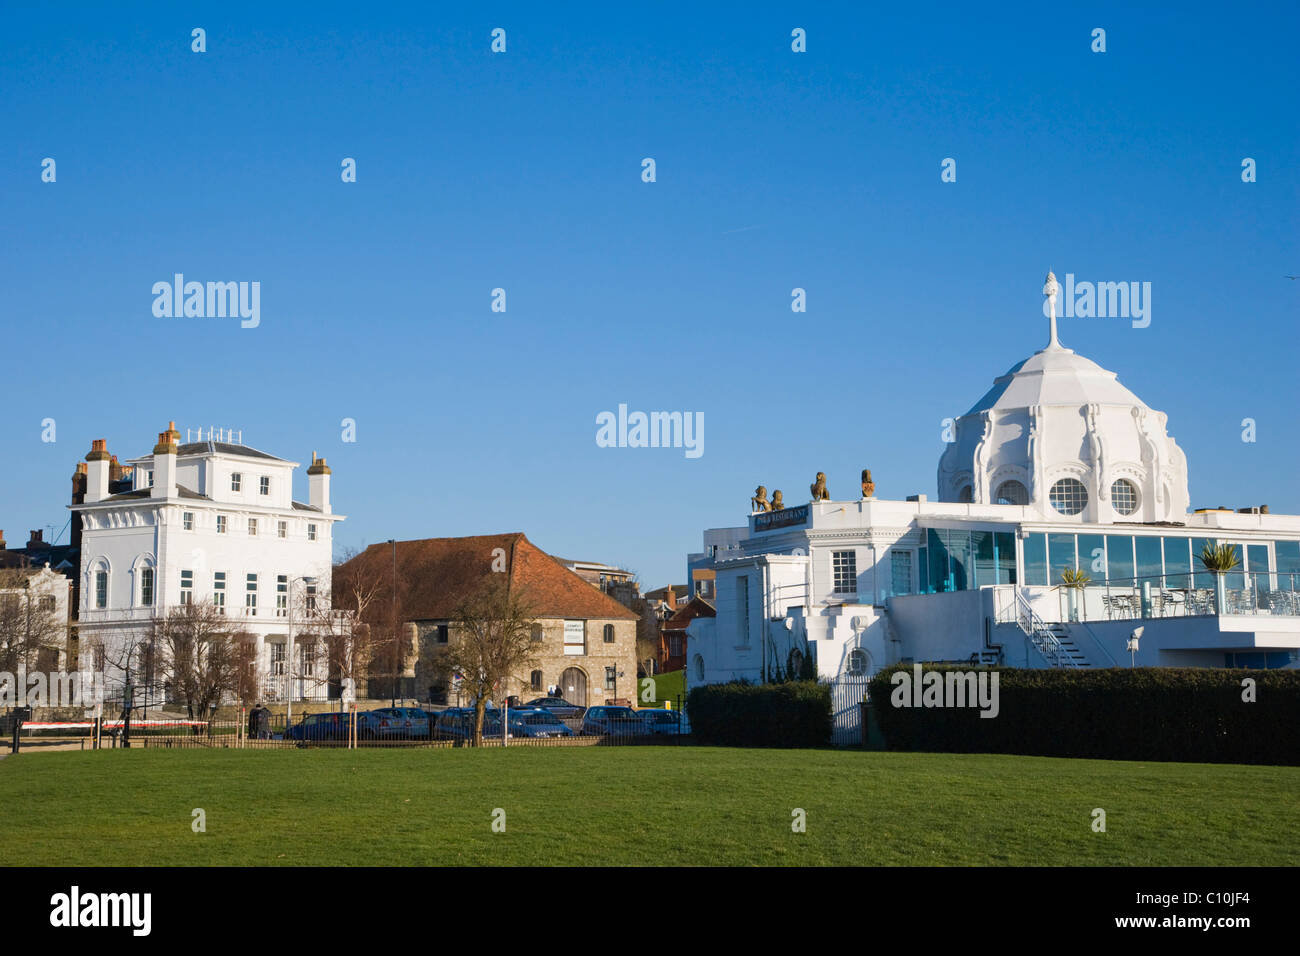 Royal Yacht Club and Wool House, Southampton Maritime Museum and Royal Pier, Thai Restaurant, Southampton, Hampshire, - Stock Image